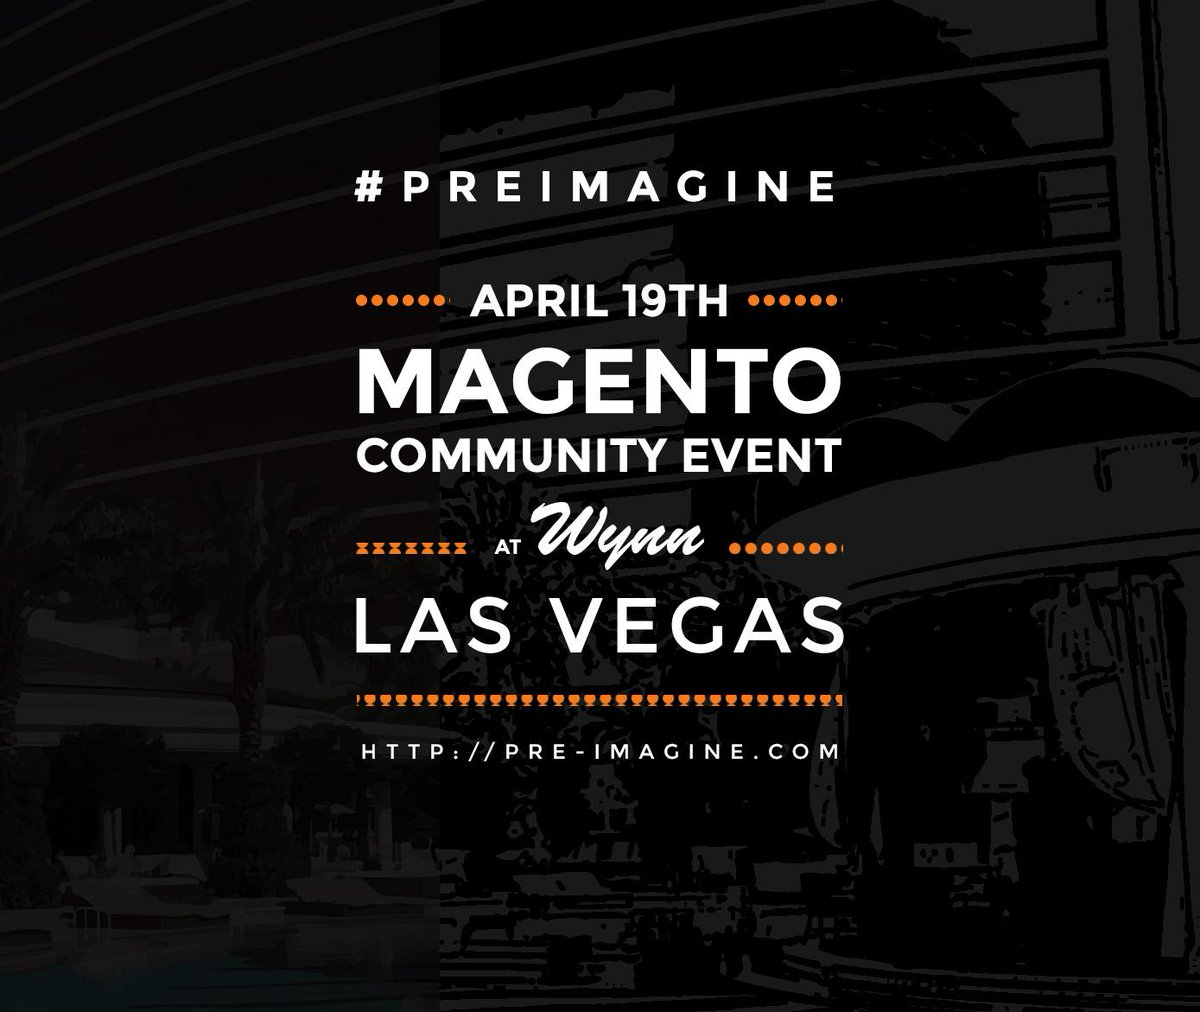 interactiv4: Good Morning! Can't wait to see you all #PreImagine this afternoon. #ImagineCommerce http://t.co/DTHEXCajys